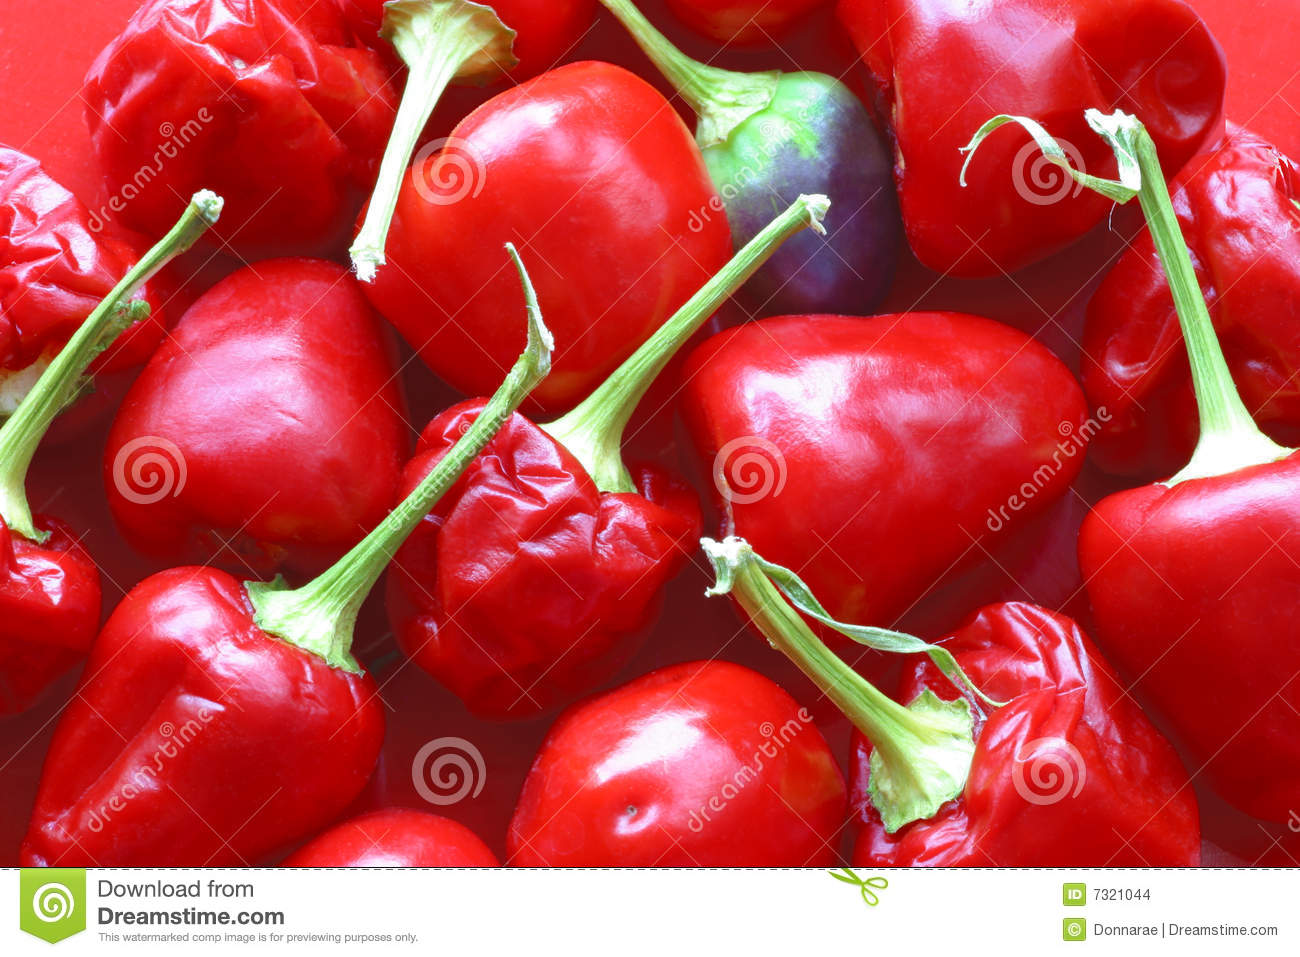 Tiny Red Hot Chili Peppers, Stock Images - Image 7321044-9906